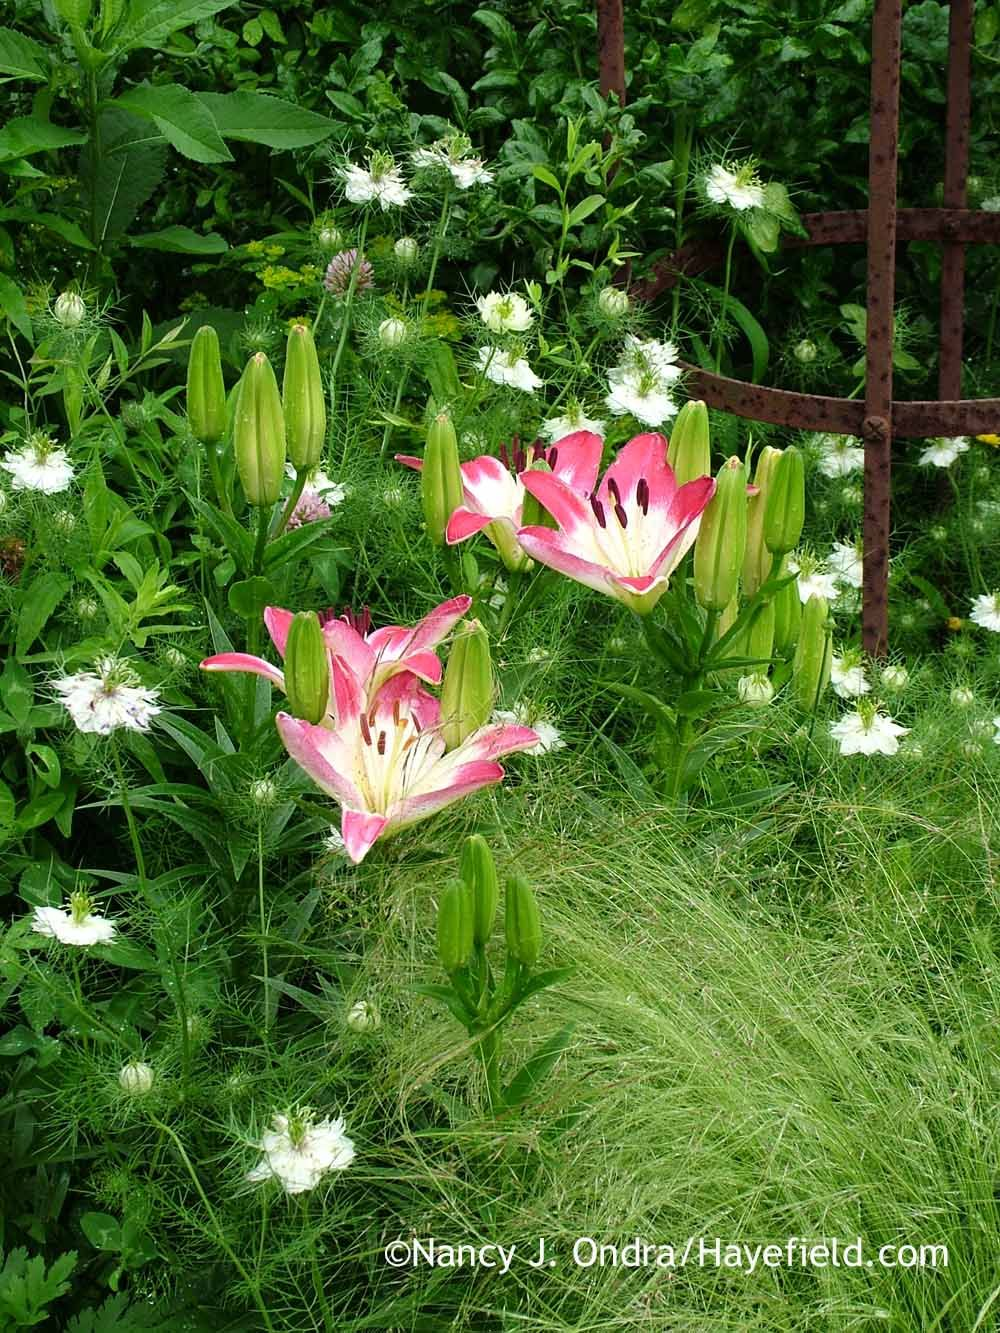 In Part 1 of Matchmaking with Bulbs, I covered some ways of choosing flowering and foliage partners to create beautiful combinations with bulbs. Another way to choose companions is consider them fr…